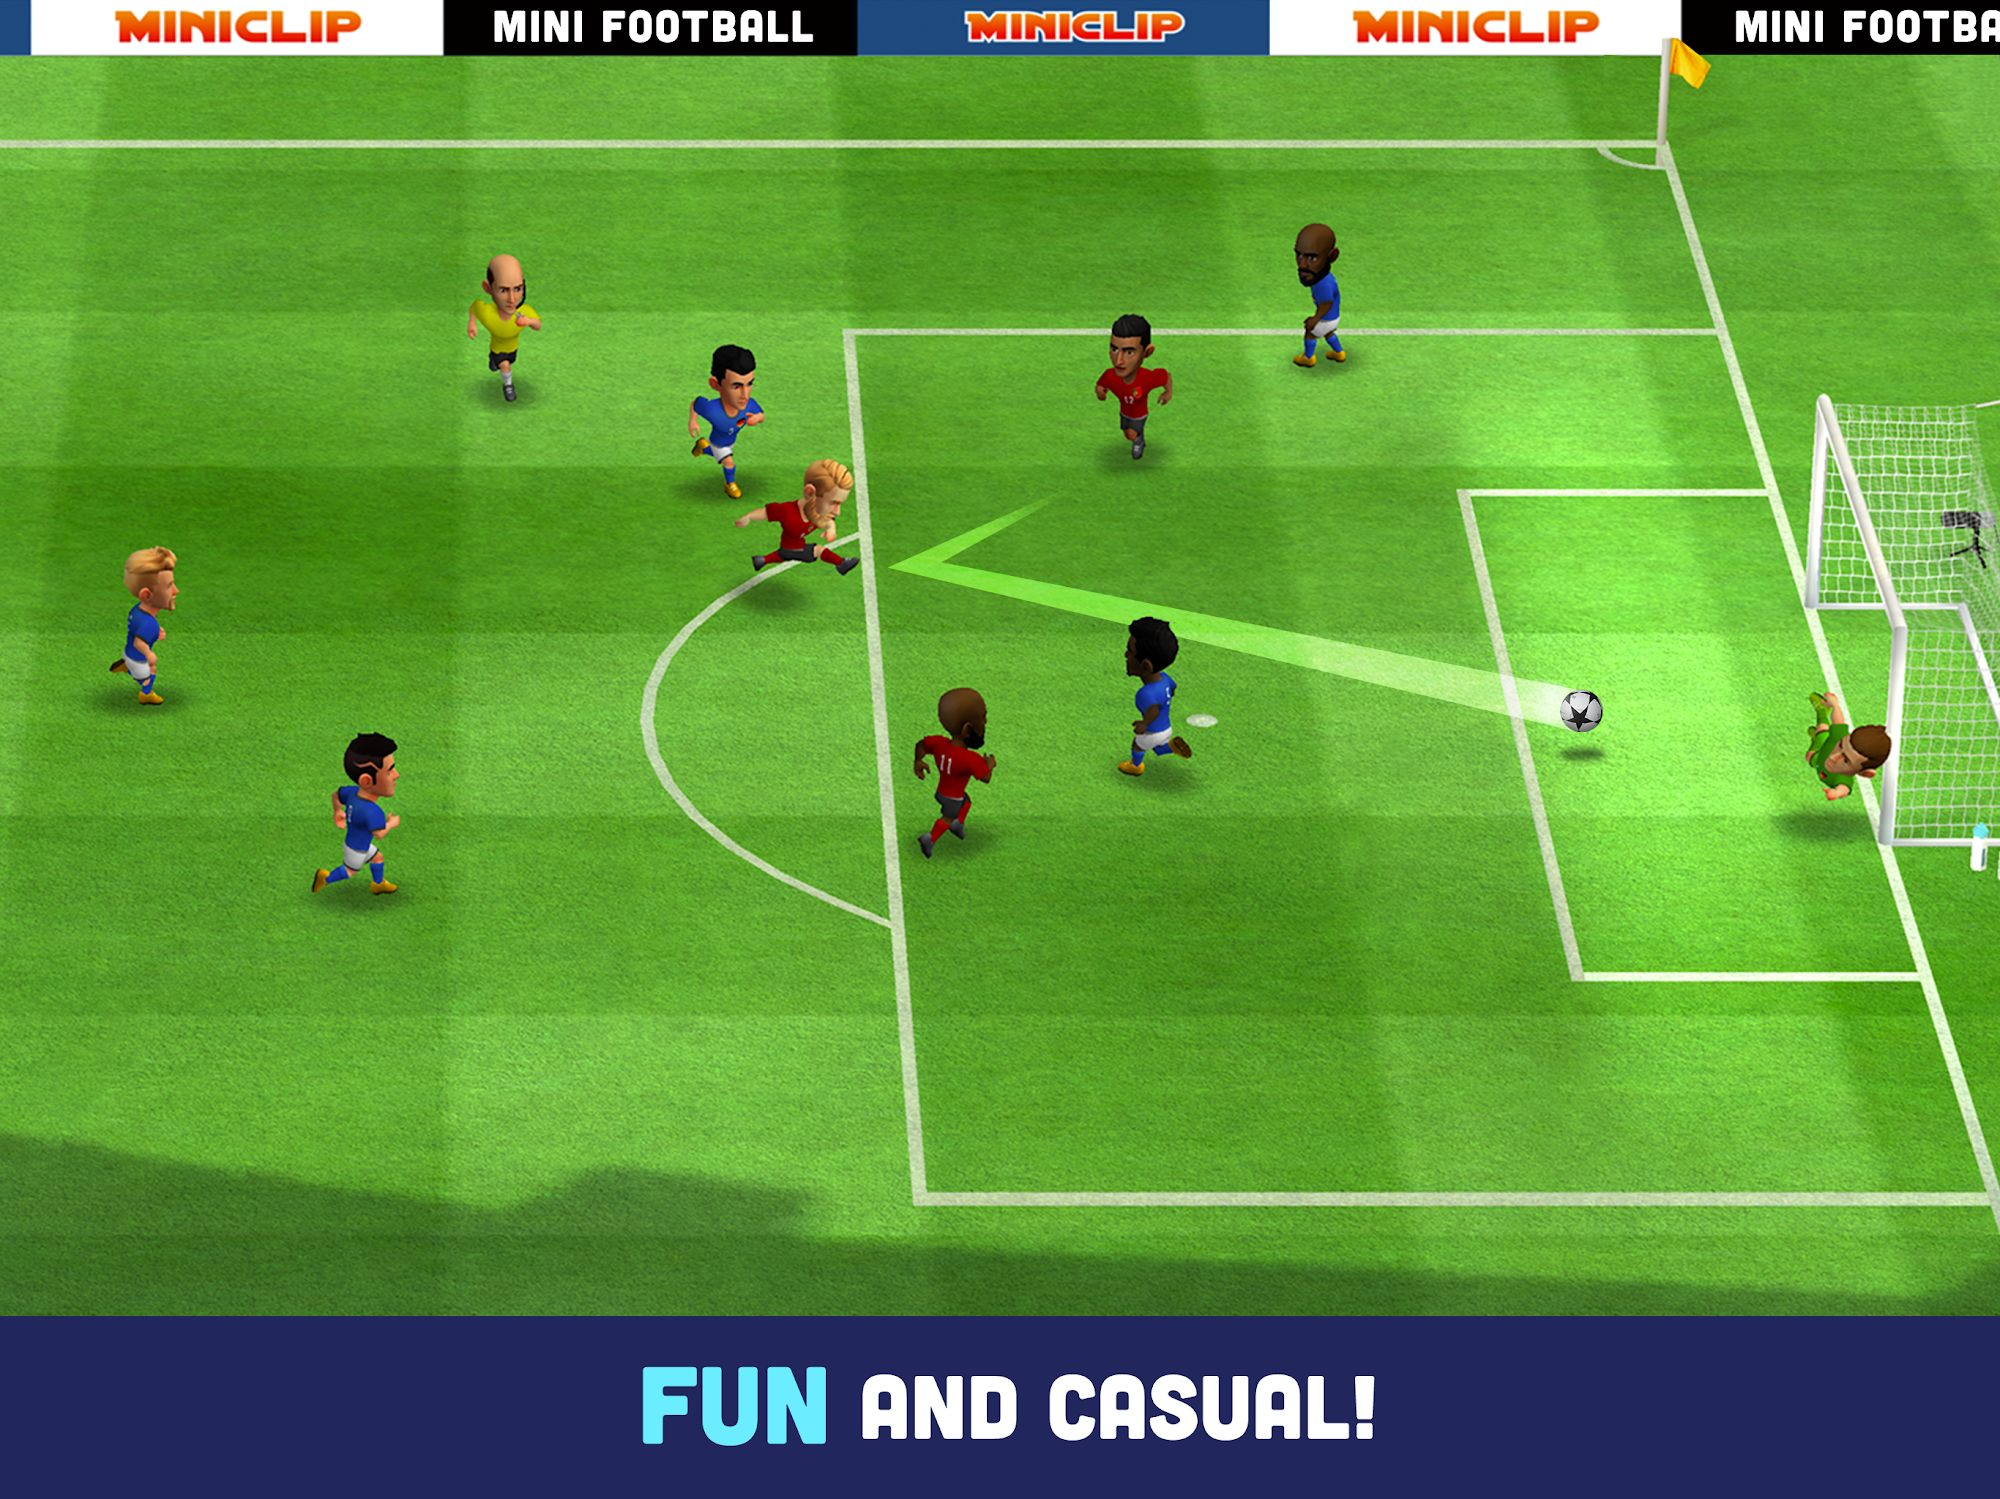 Mini Football for Android